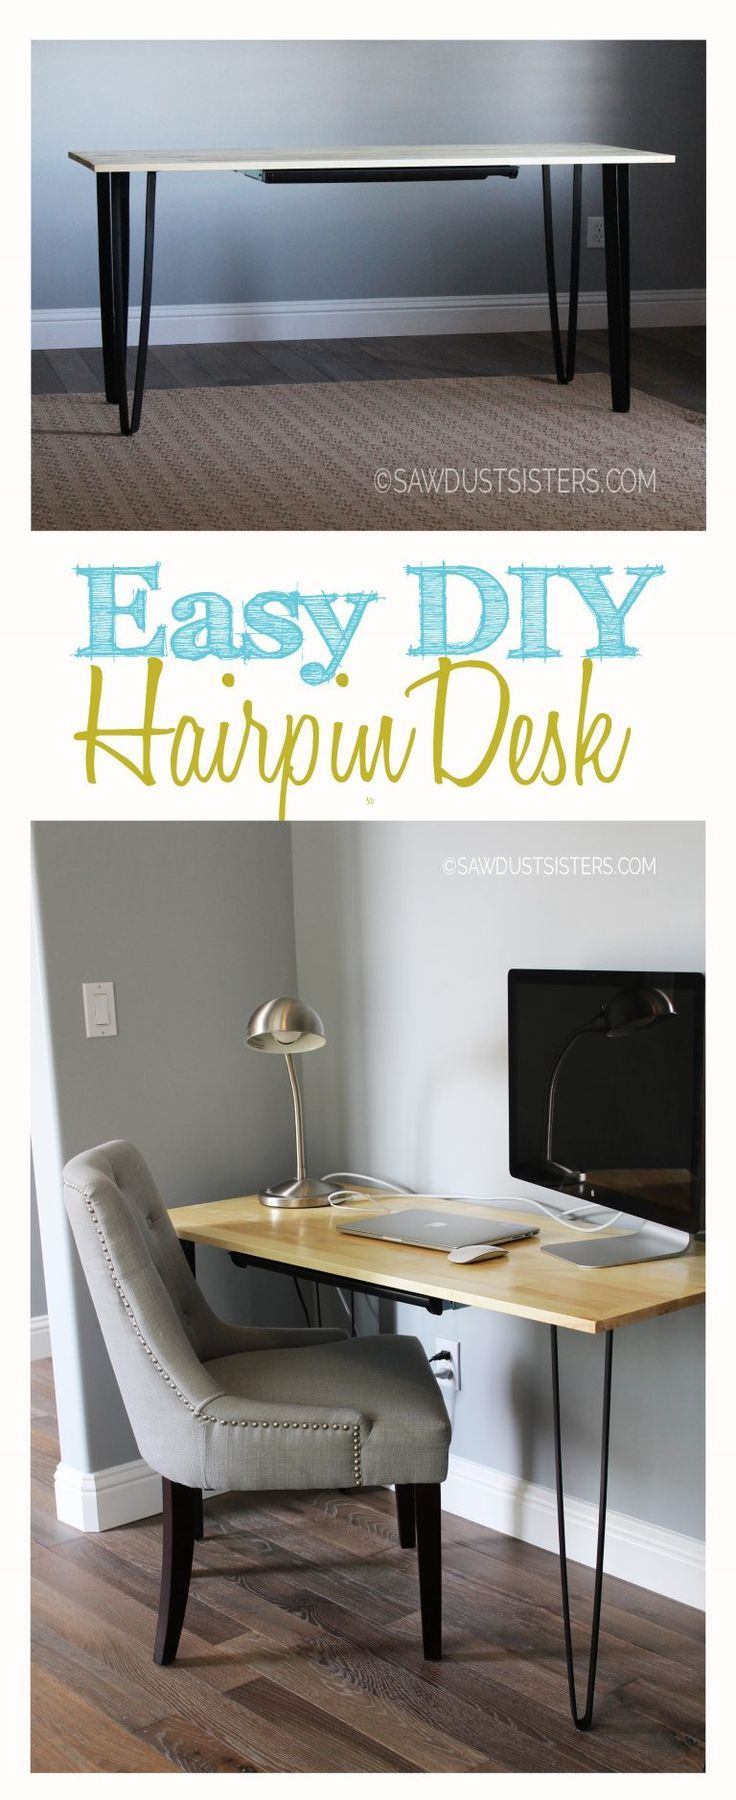 Easy DIY Writing Desk with Pencil Drawer Diy desk, Diy